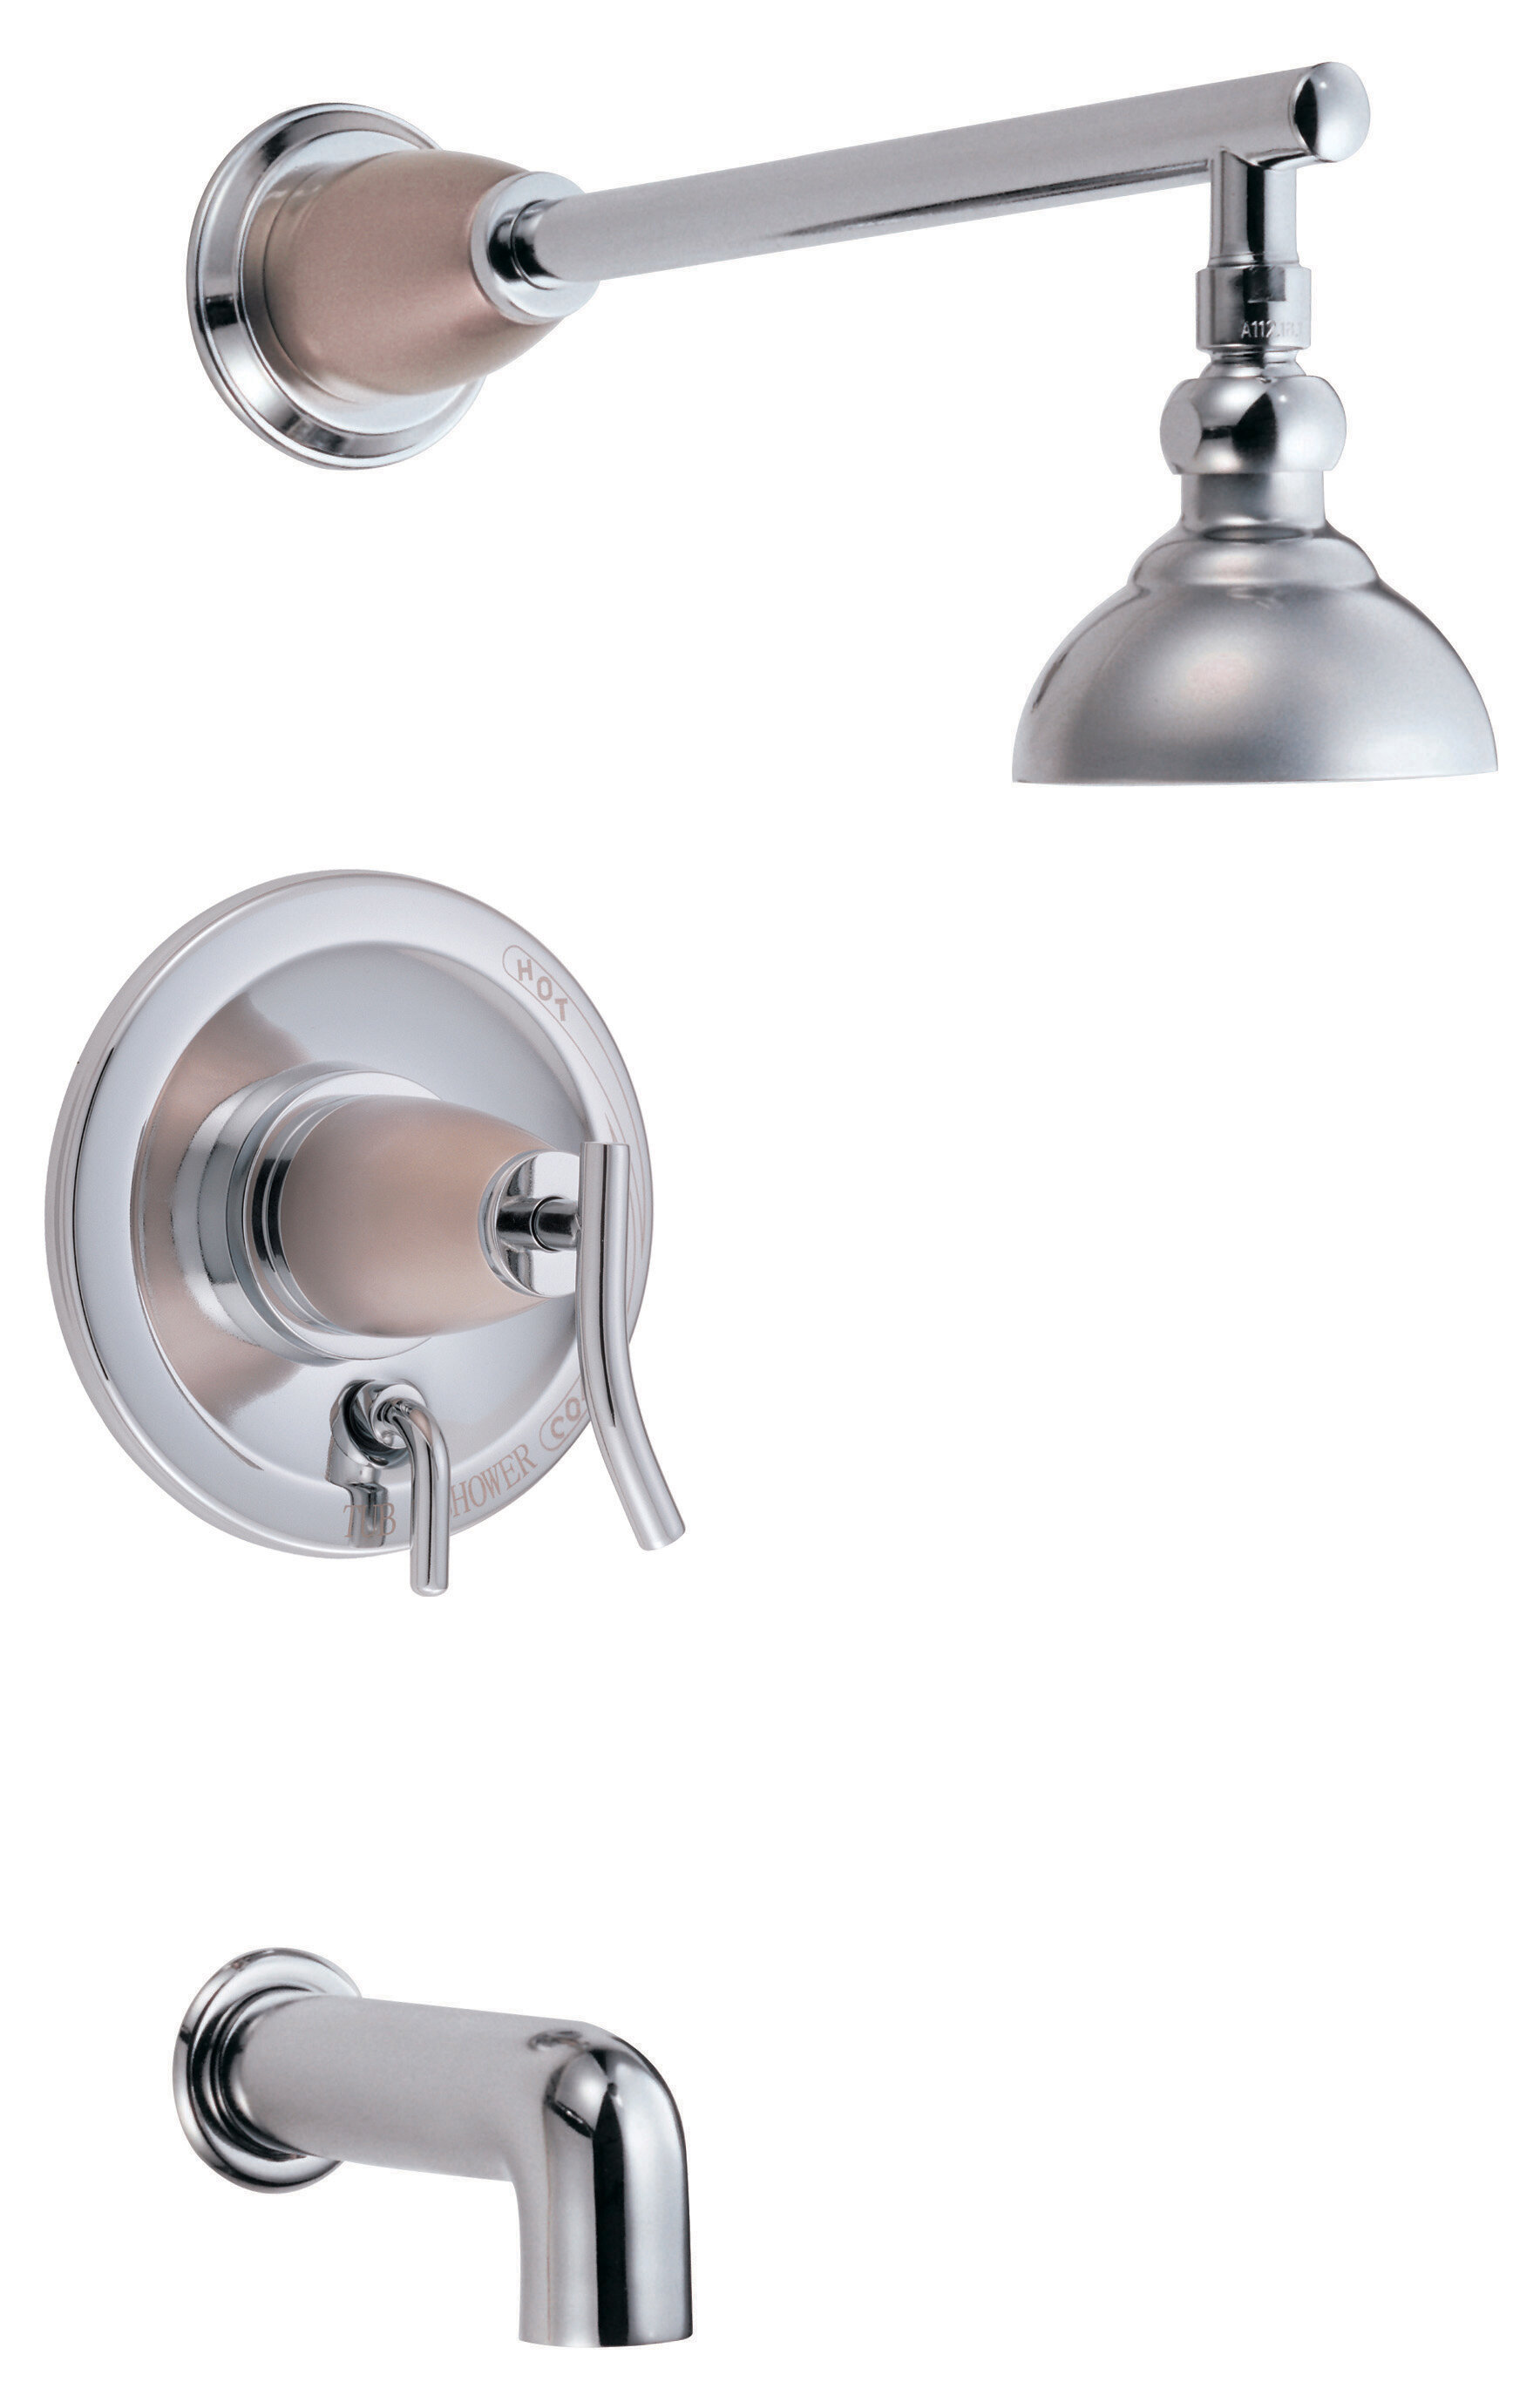 Danze Sonora Pressure Balance Diverter Tub and Shower Faucet Trim ...